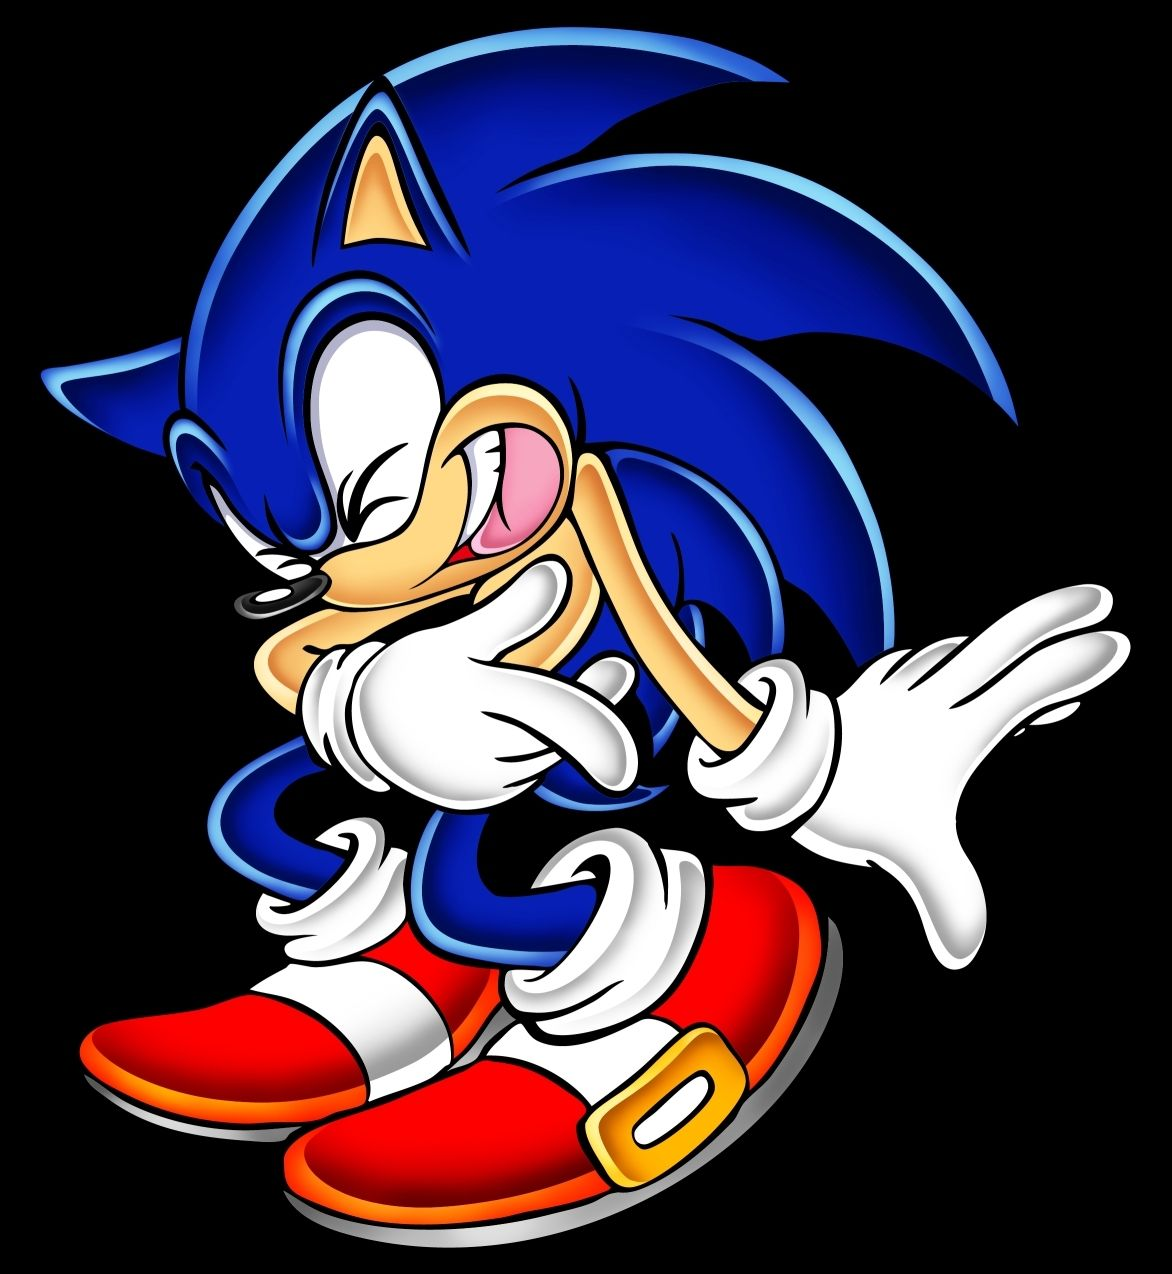 Sonic The Hedgehog Sonic The Hedgehog Super Sonic Sonic The